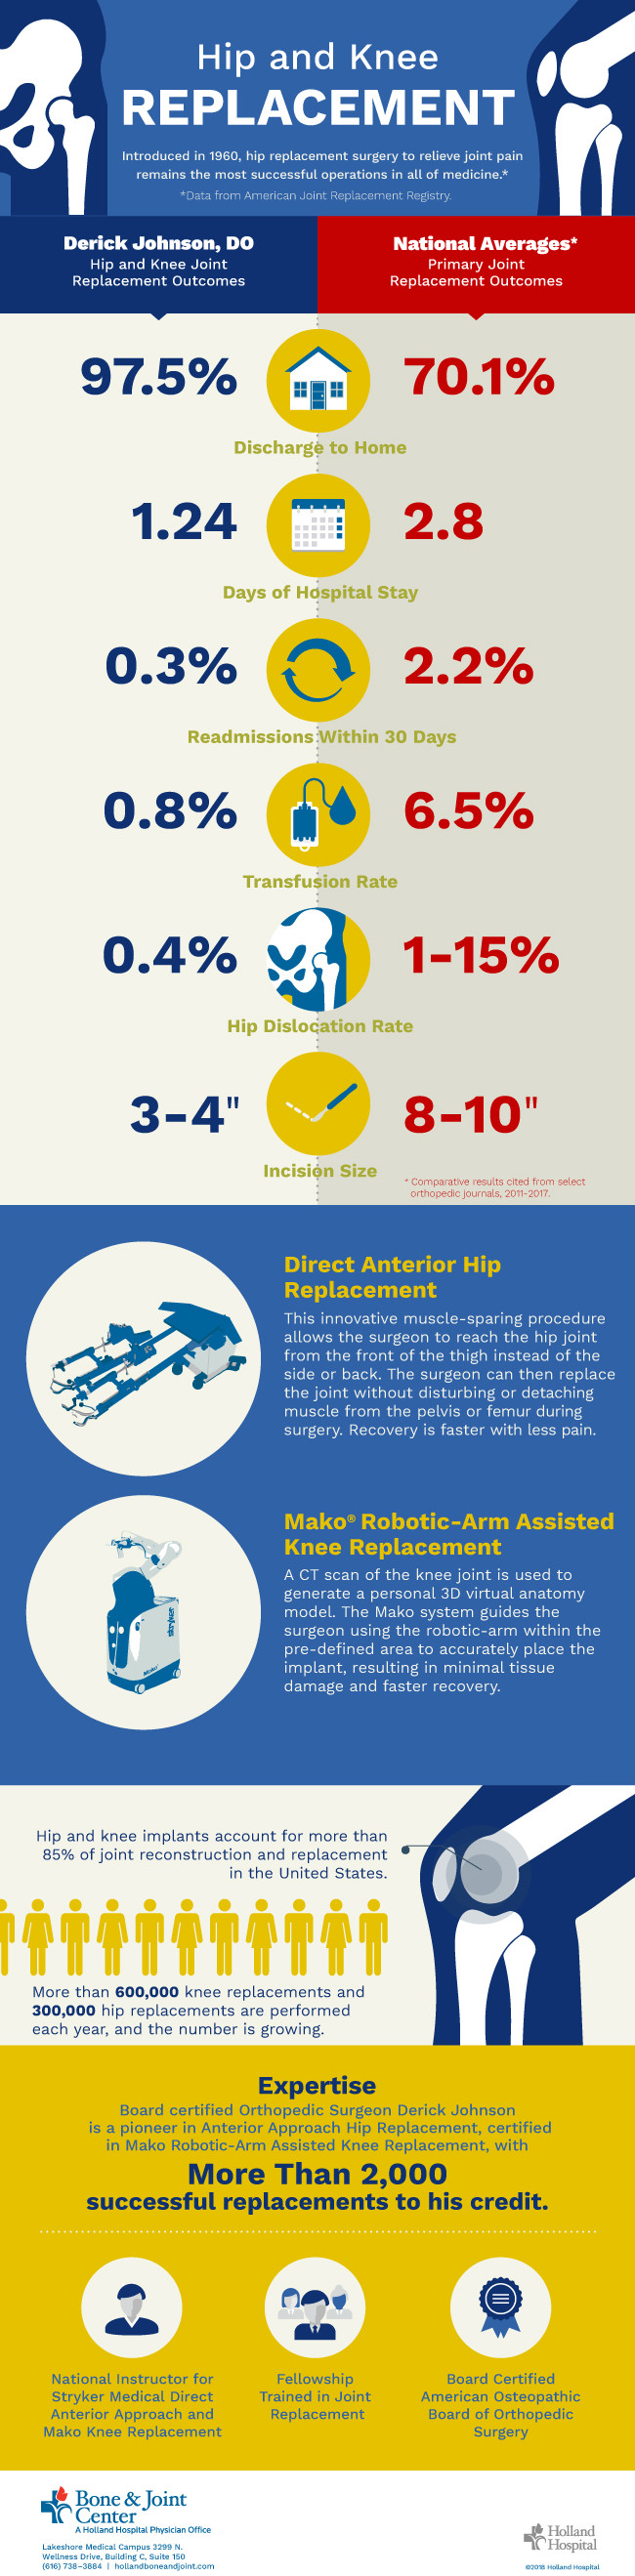 Hip and Knee Replacement